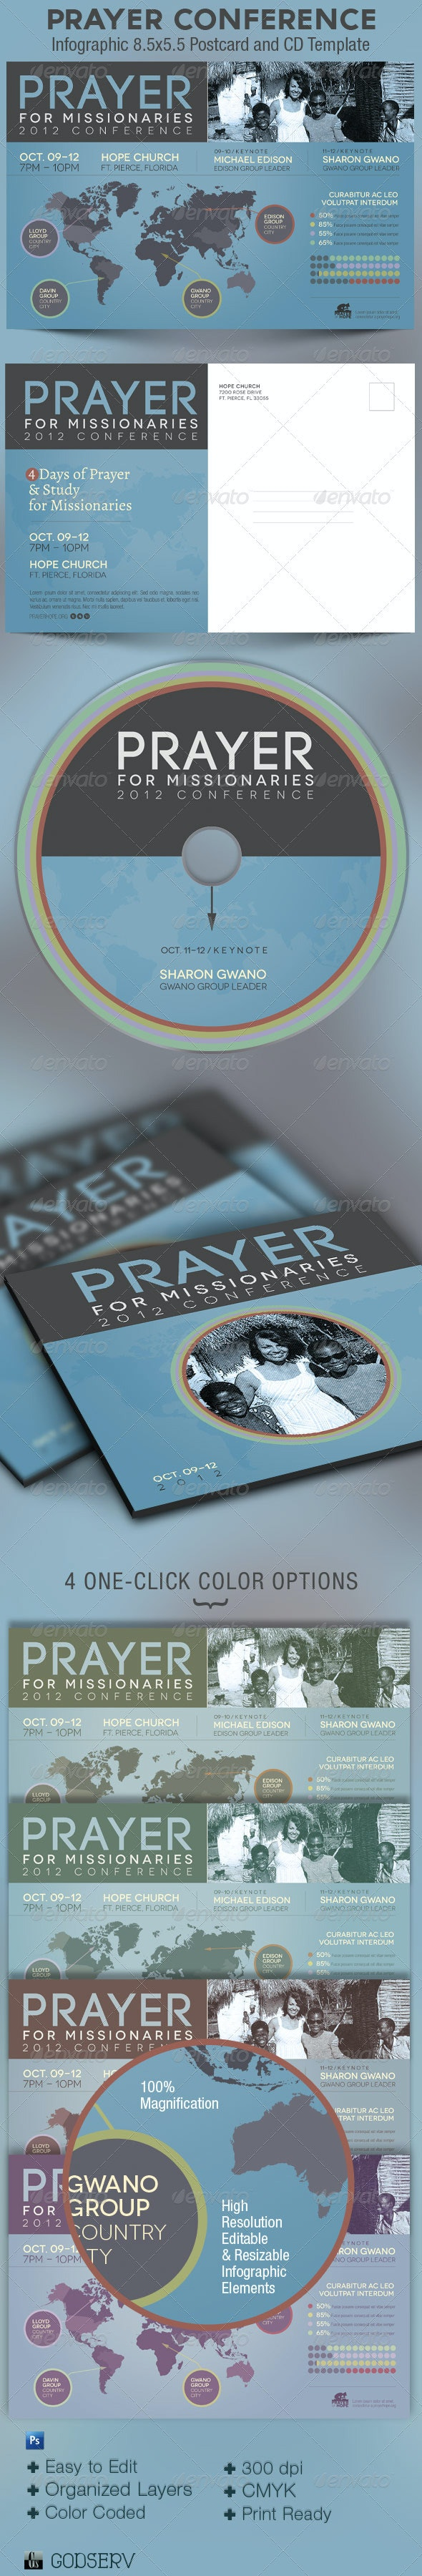 Prayer Conference Church Flyer CD Template - Church Flyers